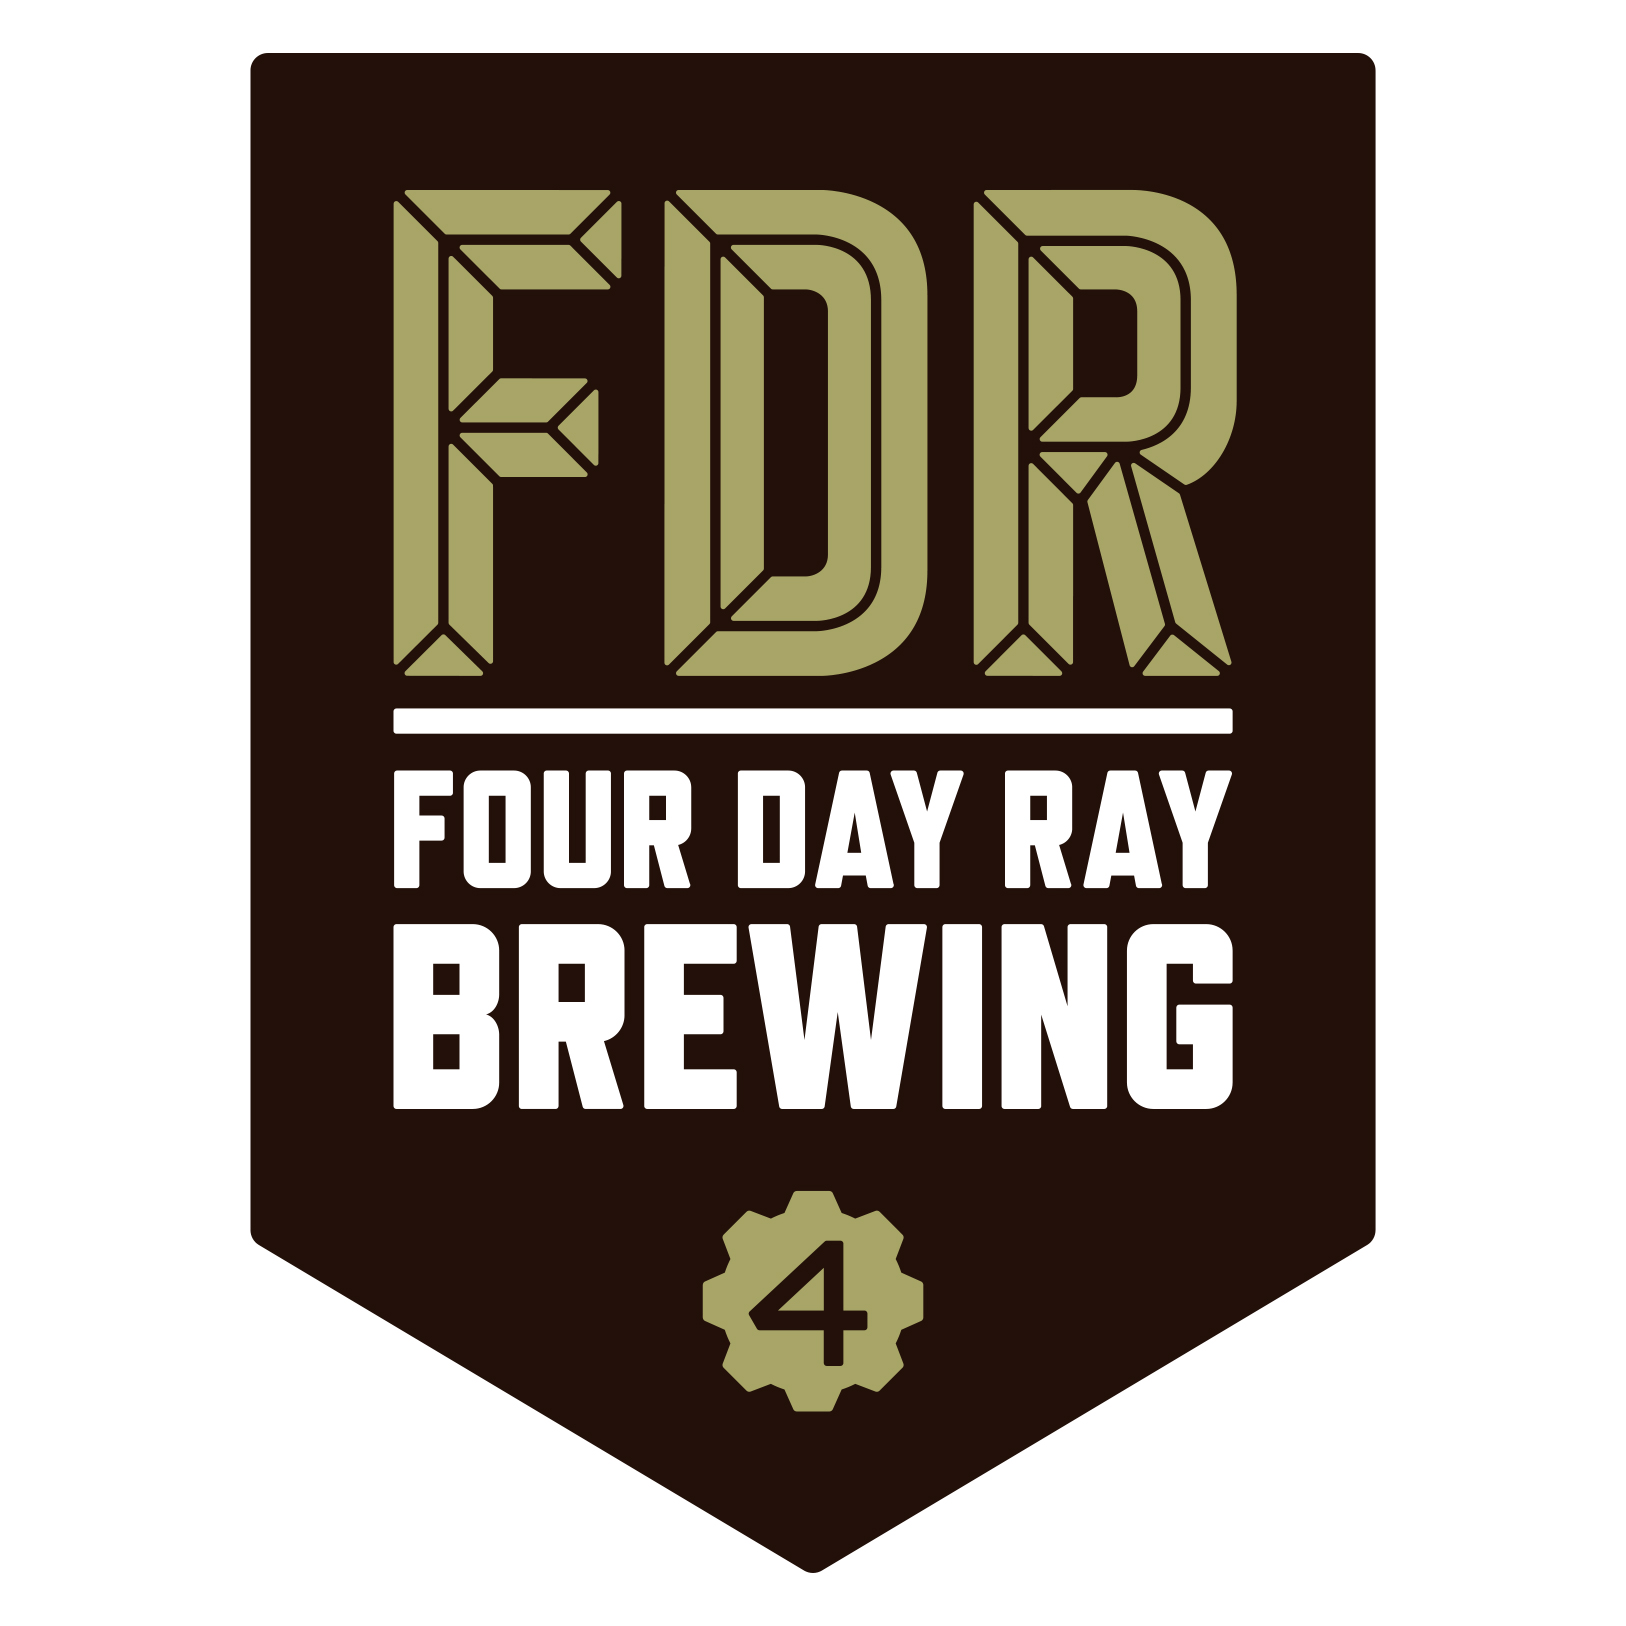 Four Day Ray Brewery